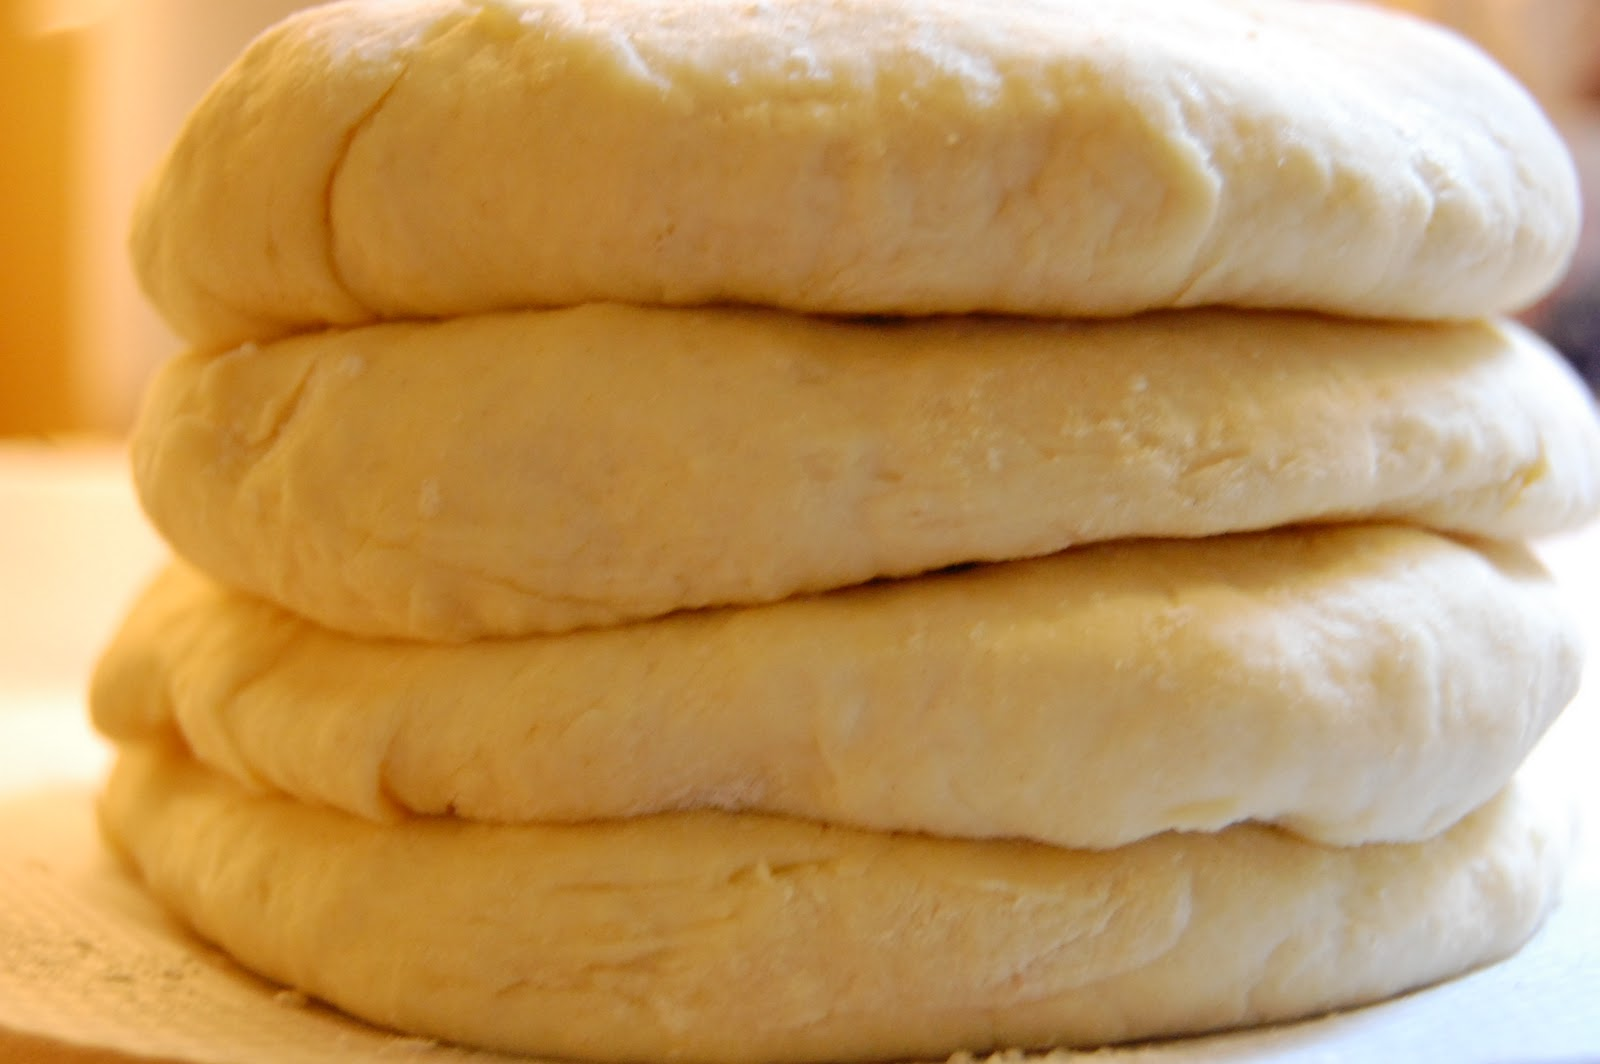 The rounds of dough are cooled for minimum 2 hours